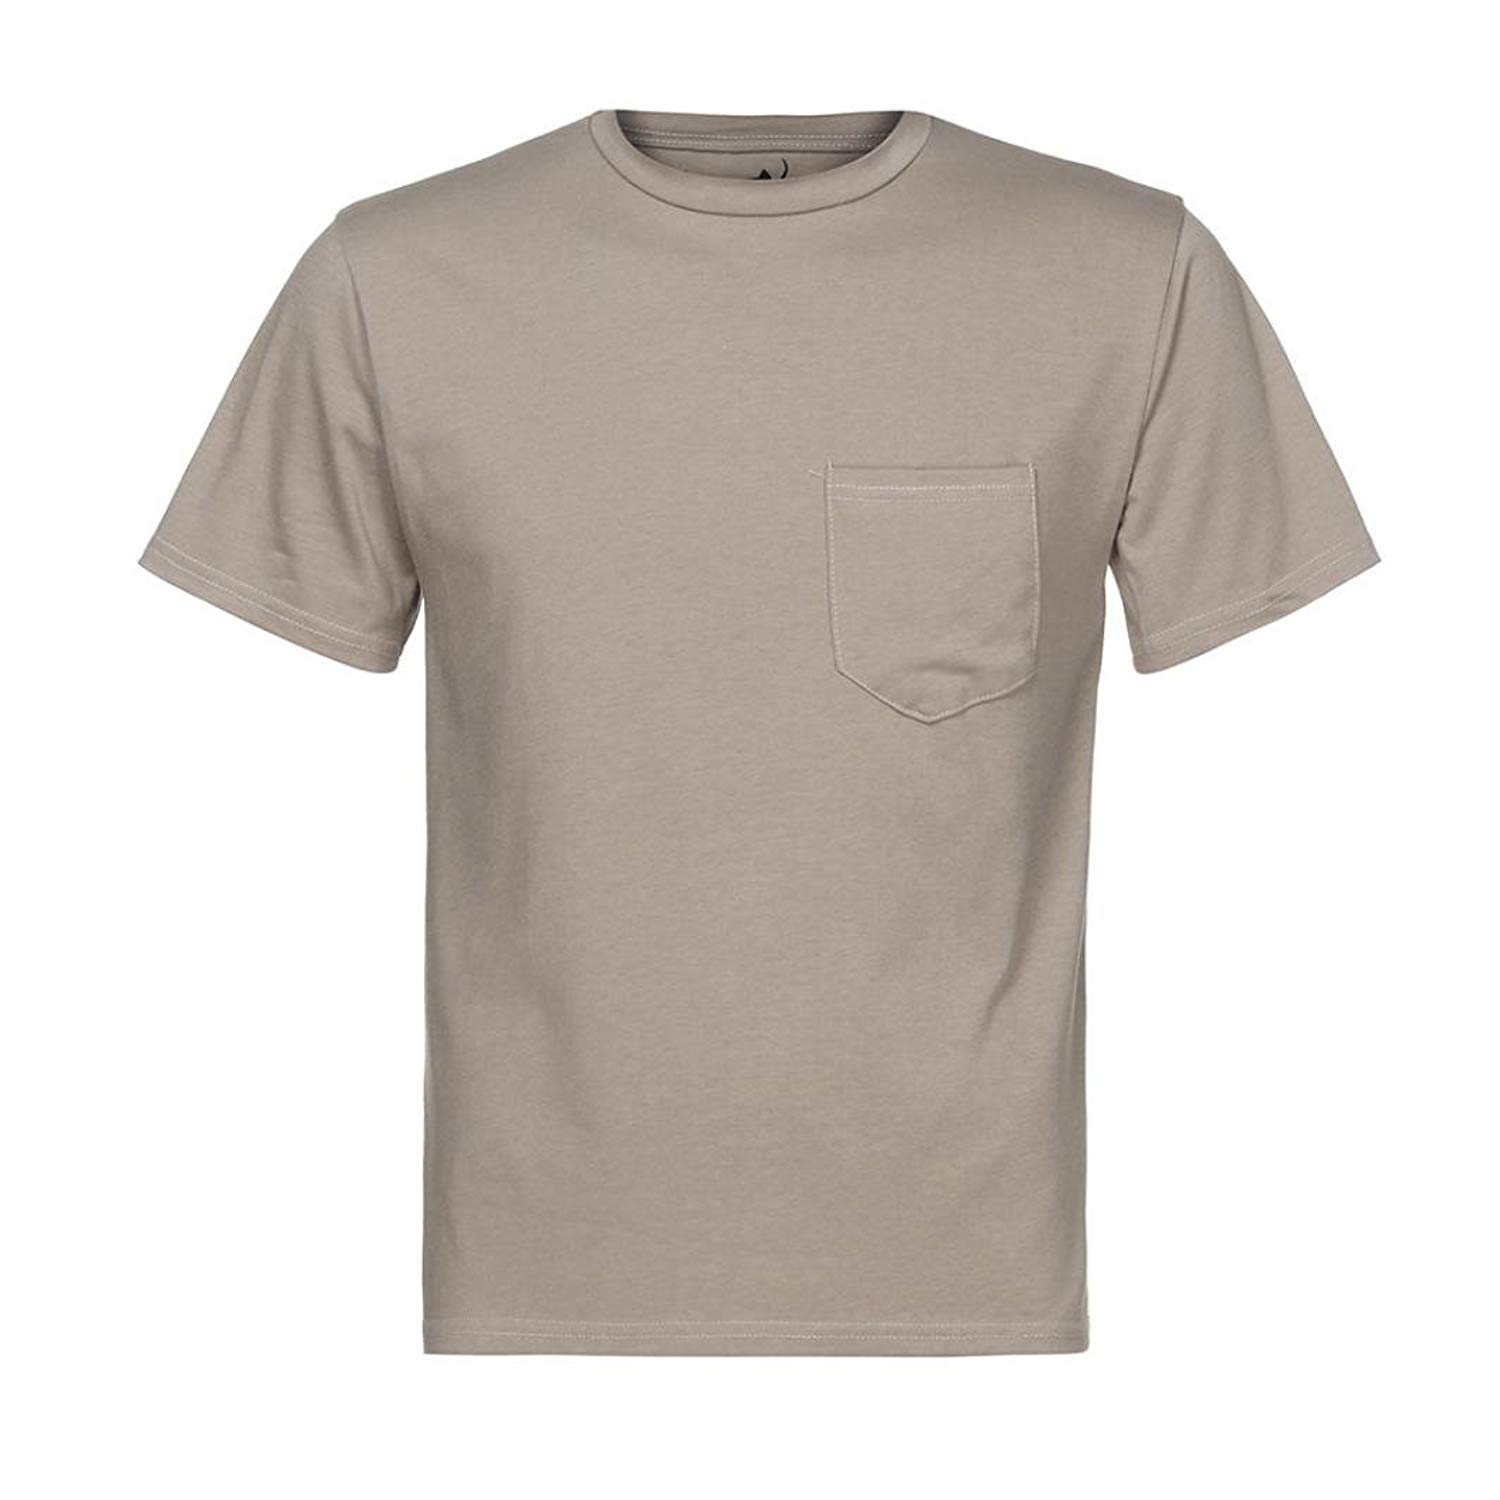 12f77841257 Get Quotations · Pervobs Men Shirts Clearance! Men Casual Shirts Tee Slim  Fit O-Neck Short Sleeve